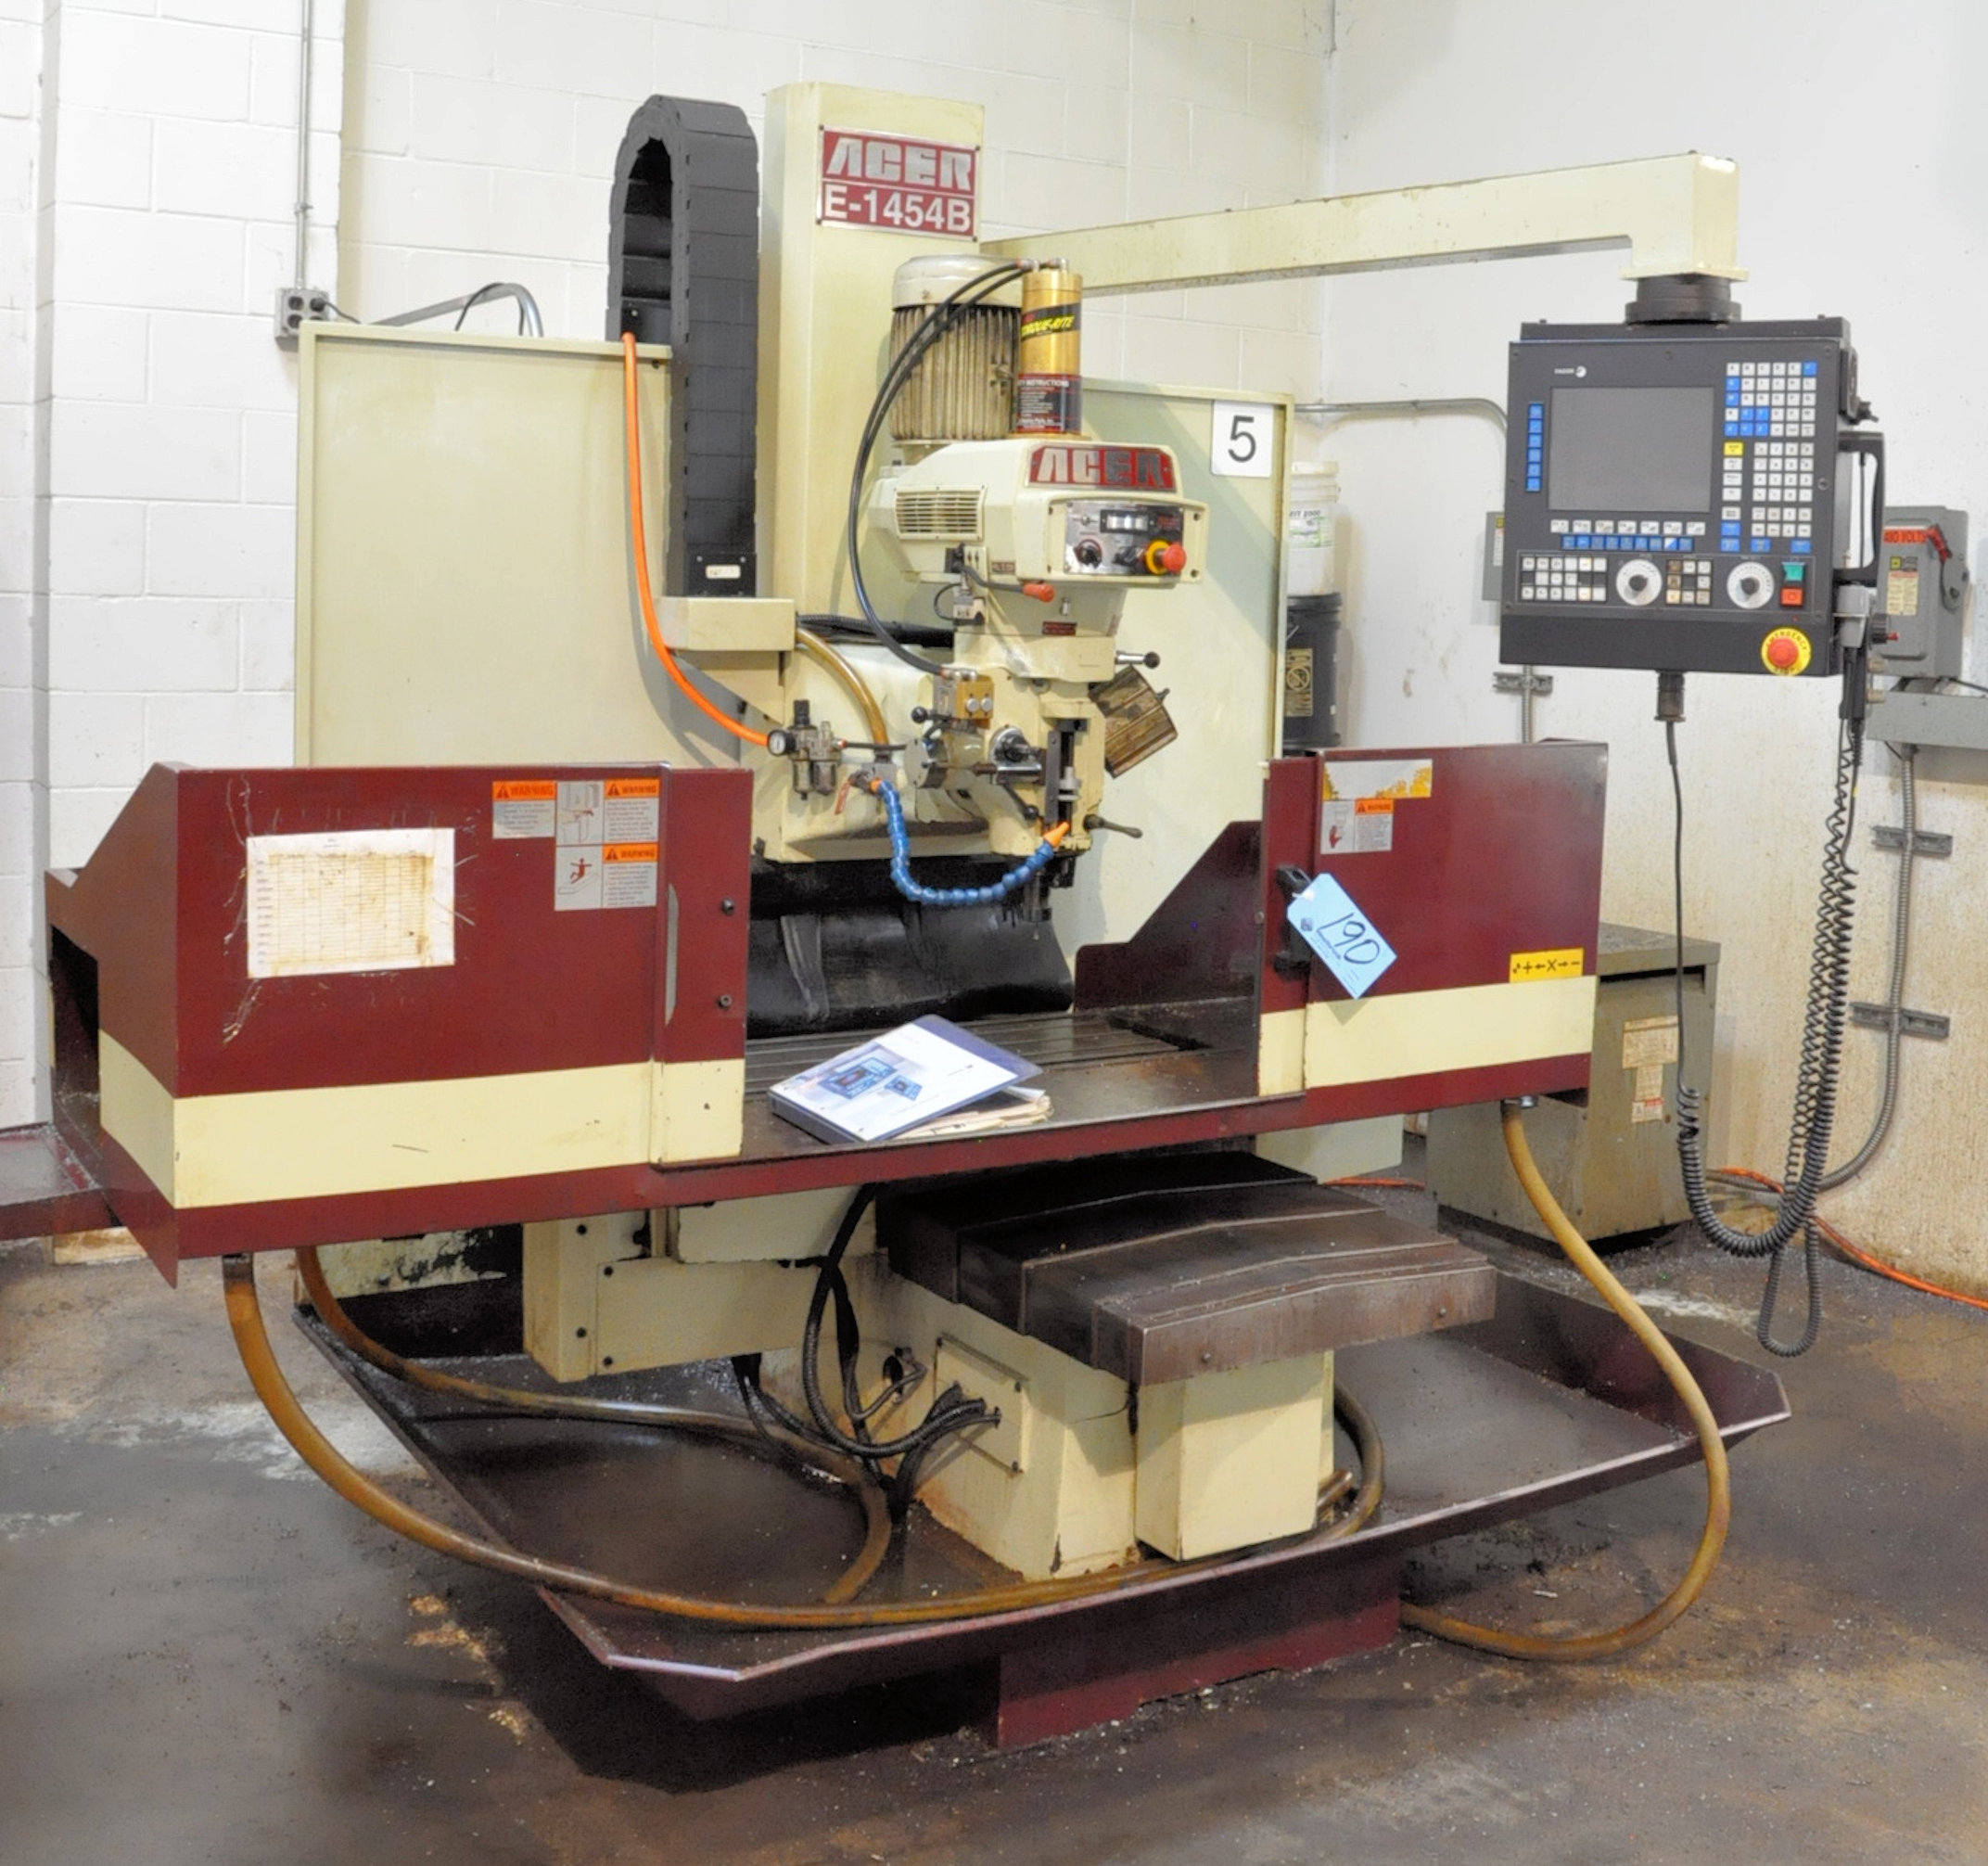 Acer Model E-1454B, 3-Axis CNC Bed Type Vertical Milling Machine, Fagor Control 5-HP (2009)